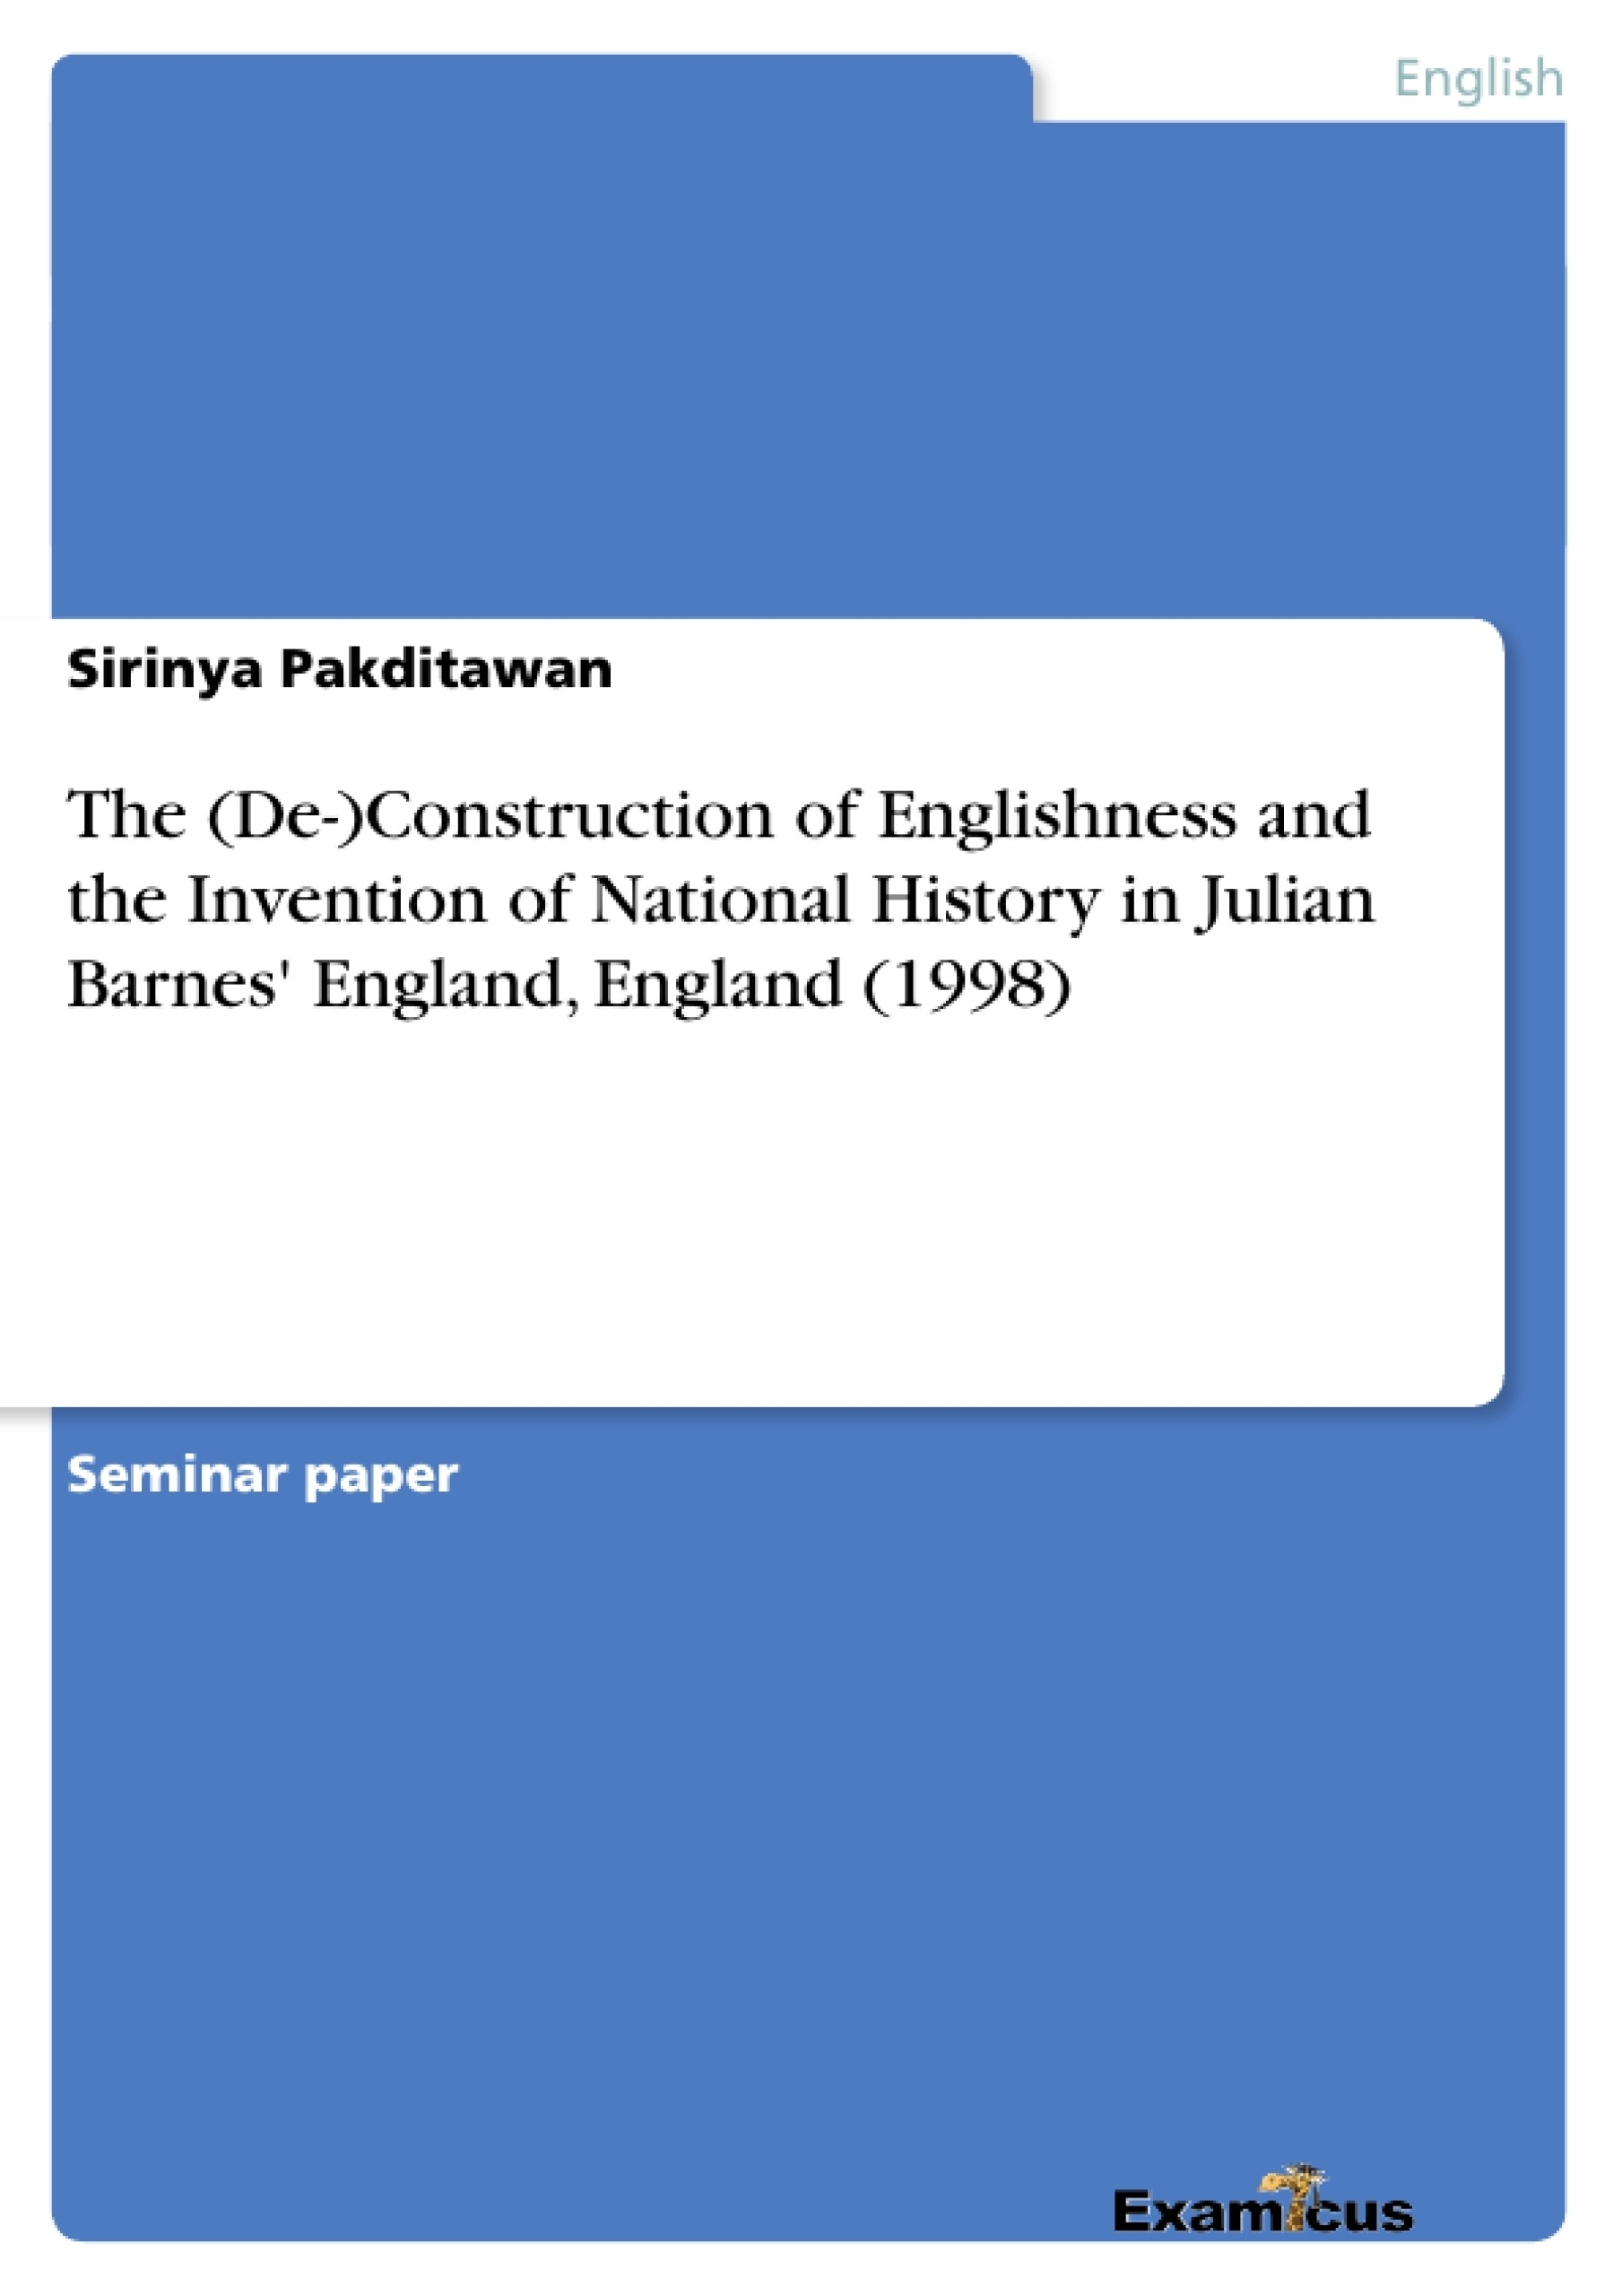 Title: The (De-)Construction of Englishness and the Invention of National History in Julian Barnes' England, England (1998)